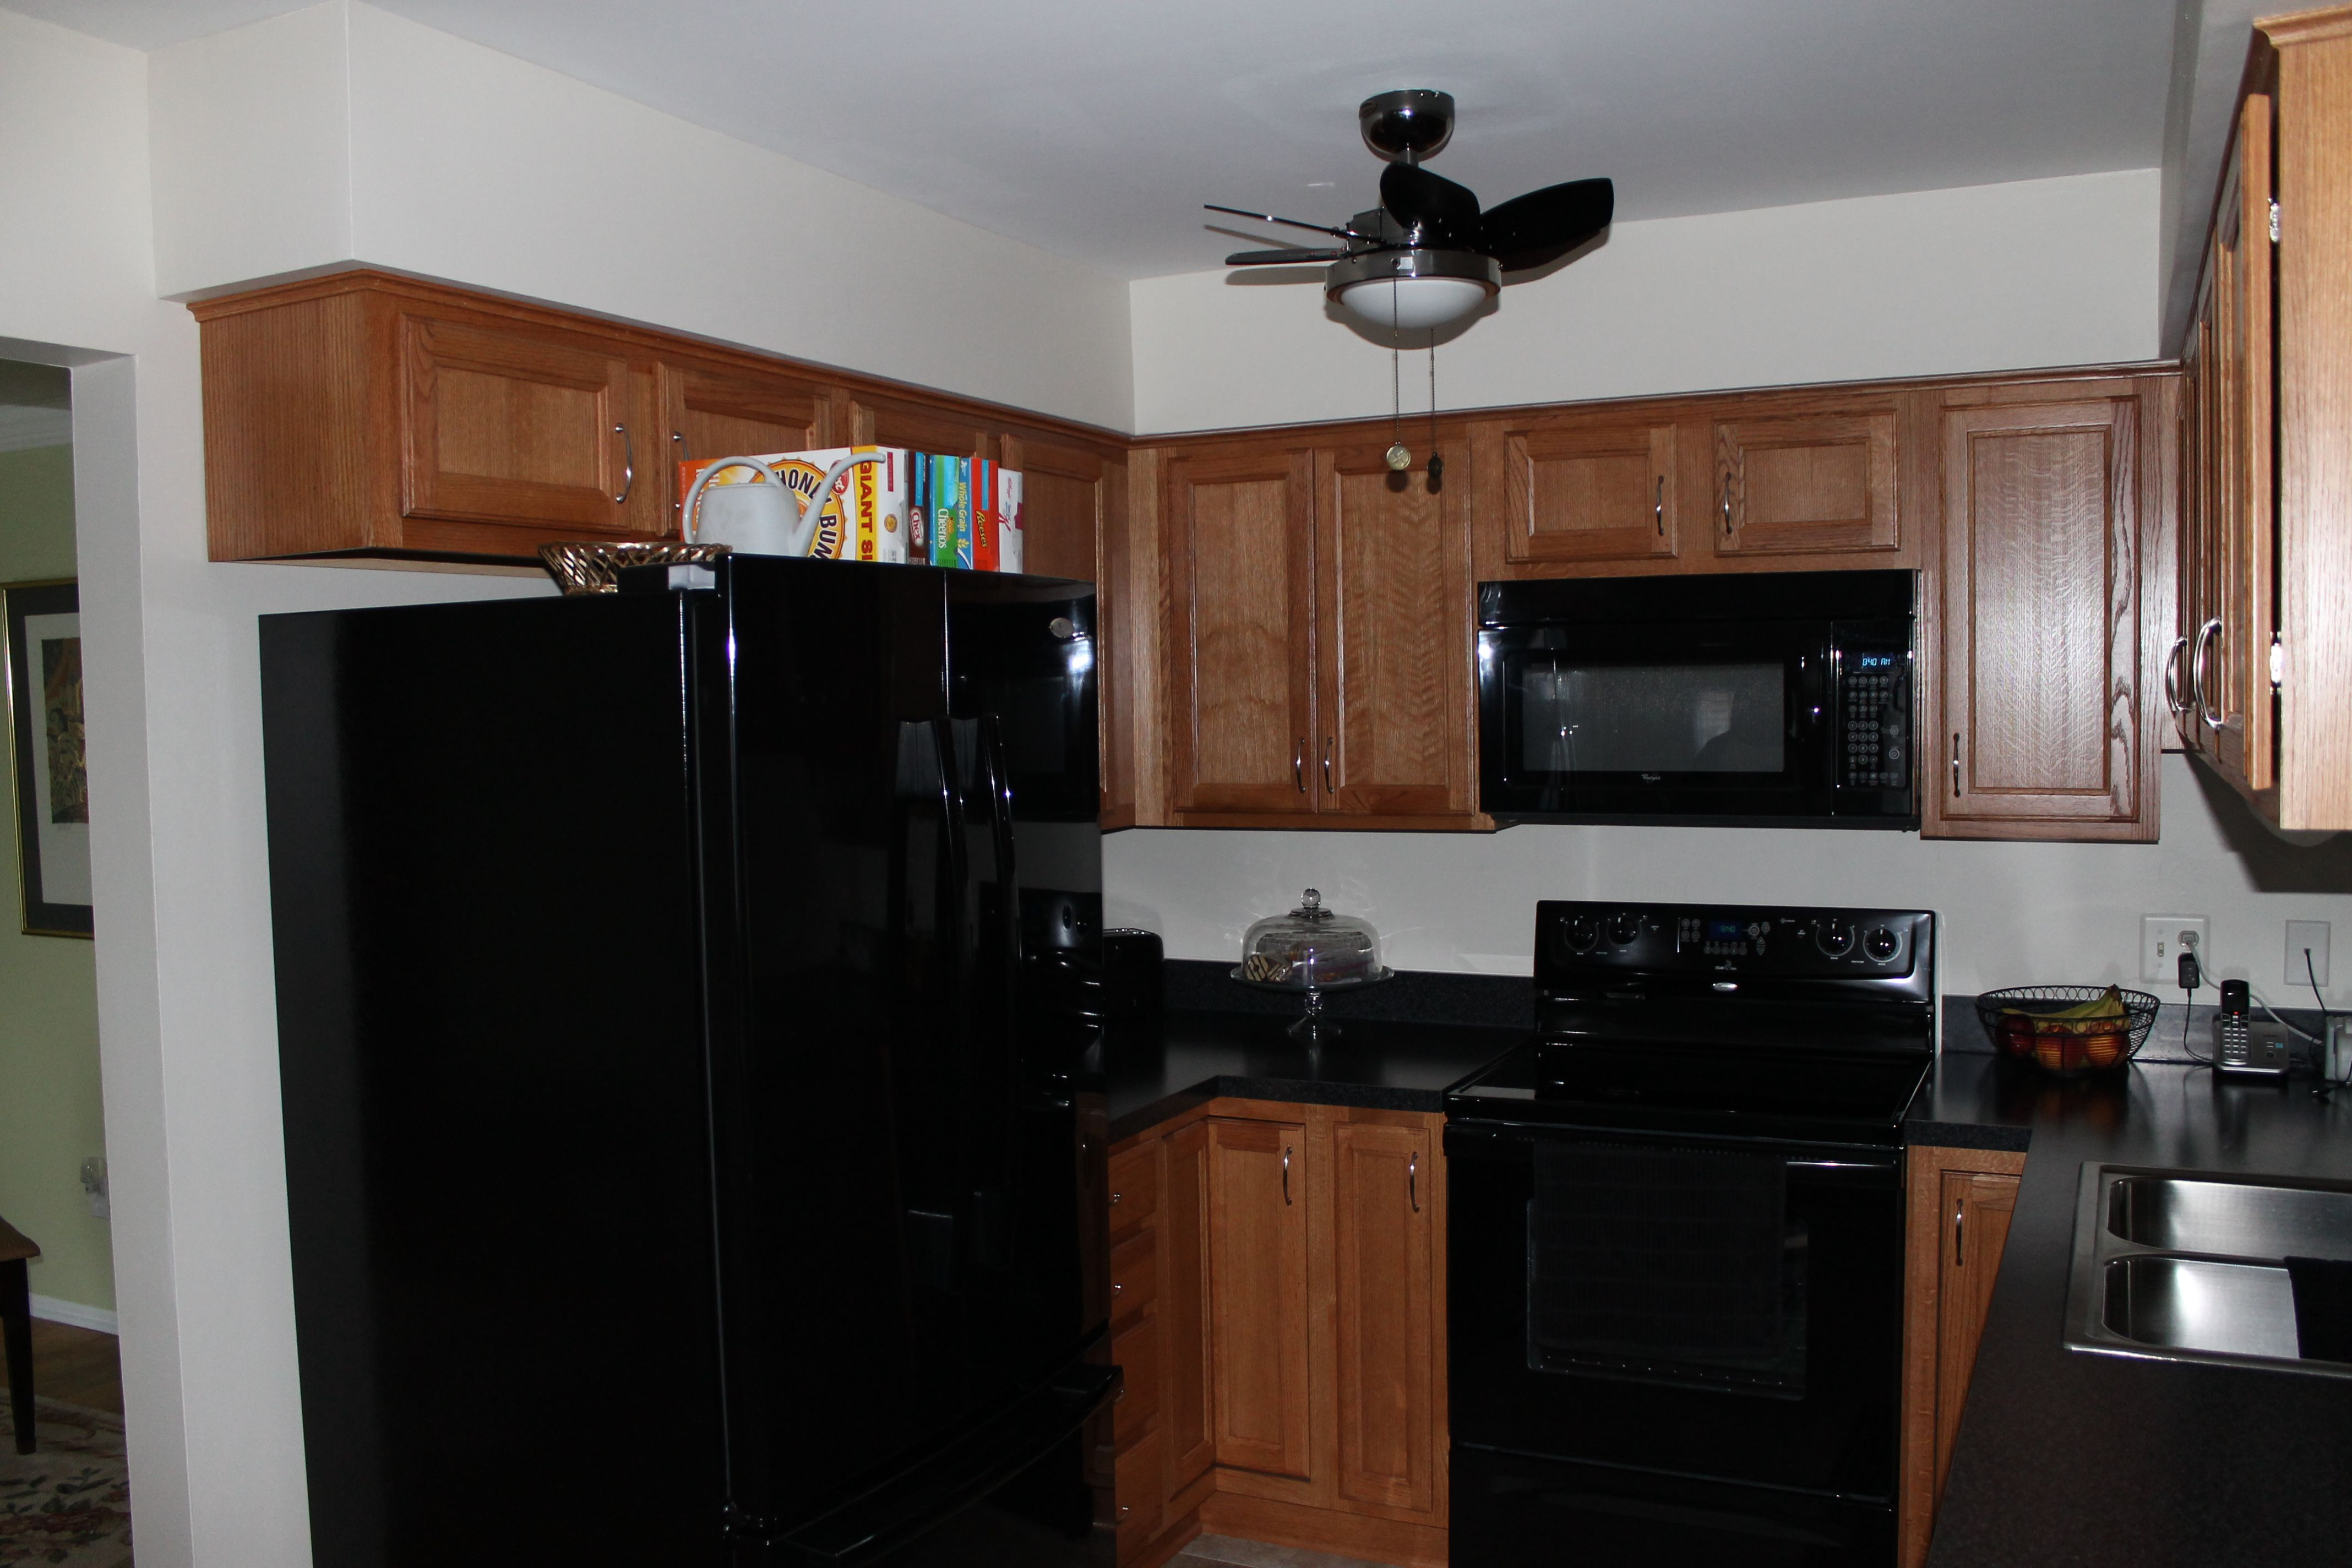 Medium, Light Shaker Style Cabinetry With Black Appliances And Dark Quartz  Countertop